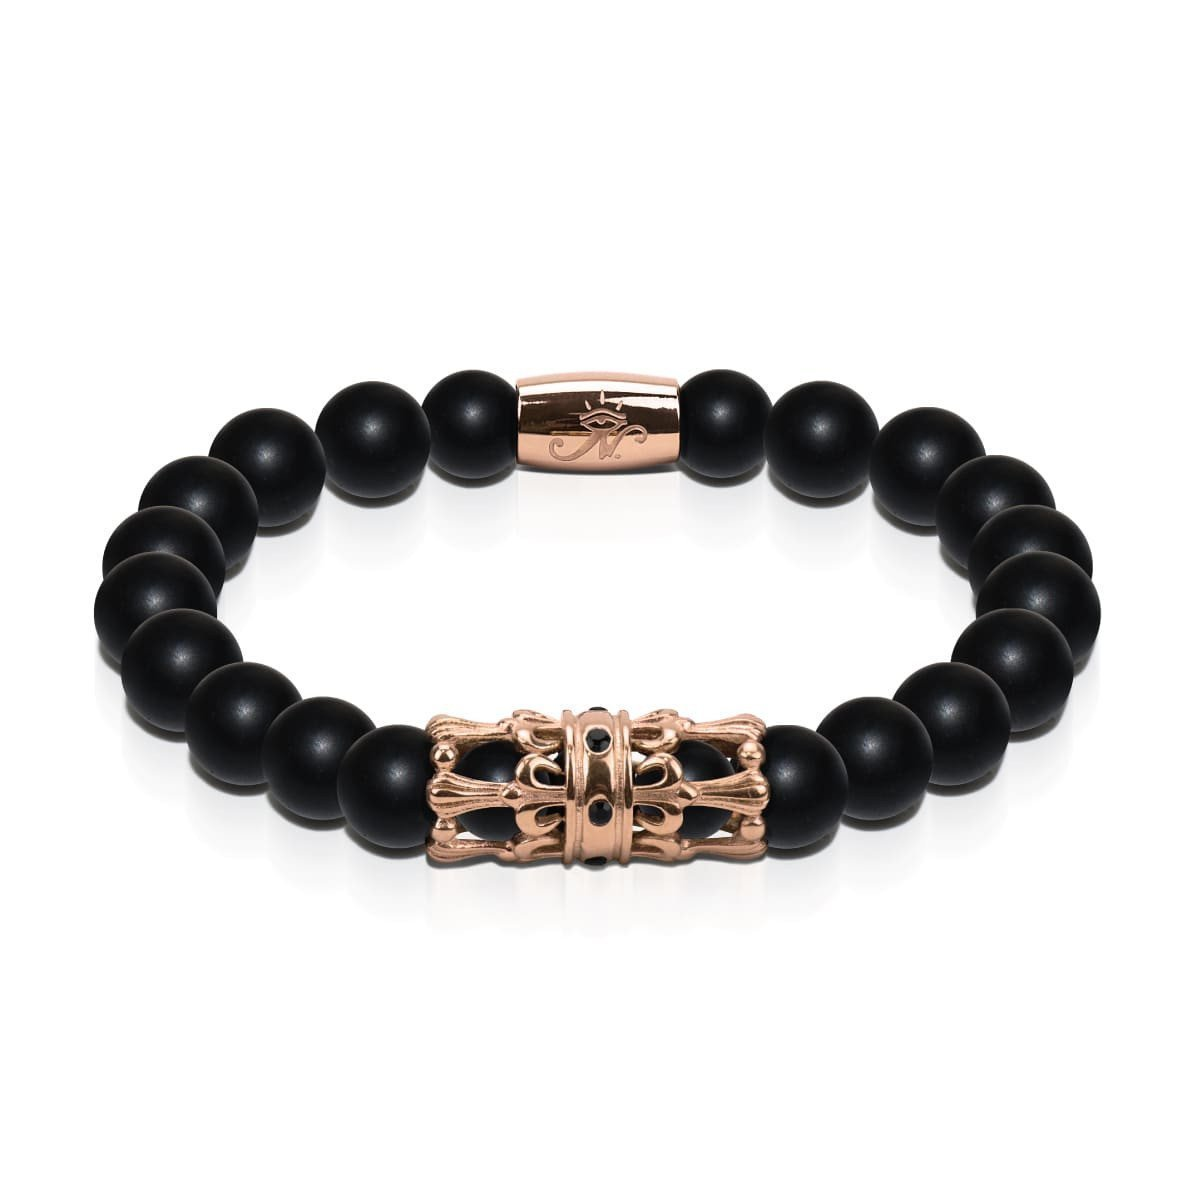 18k Rose Gold Crown | Matte Black Agate | Men's Kingdom Bead Bracelet | Engravable